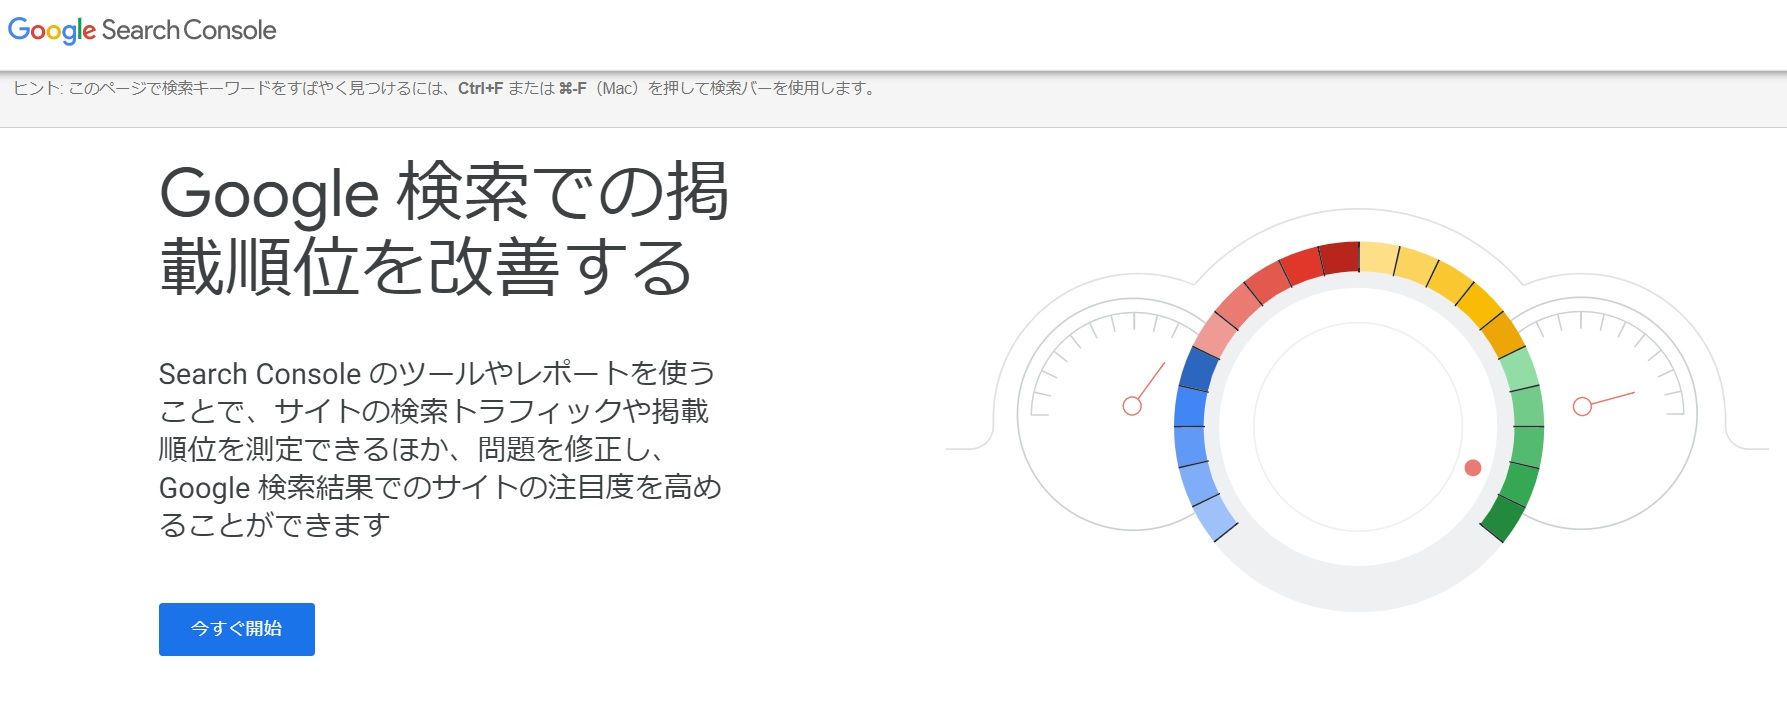 Google search consoleを始める